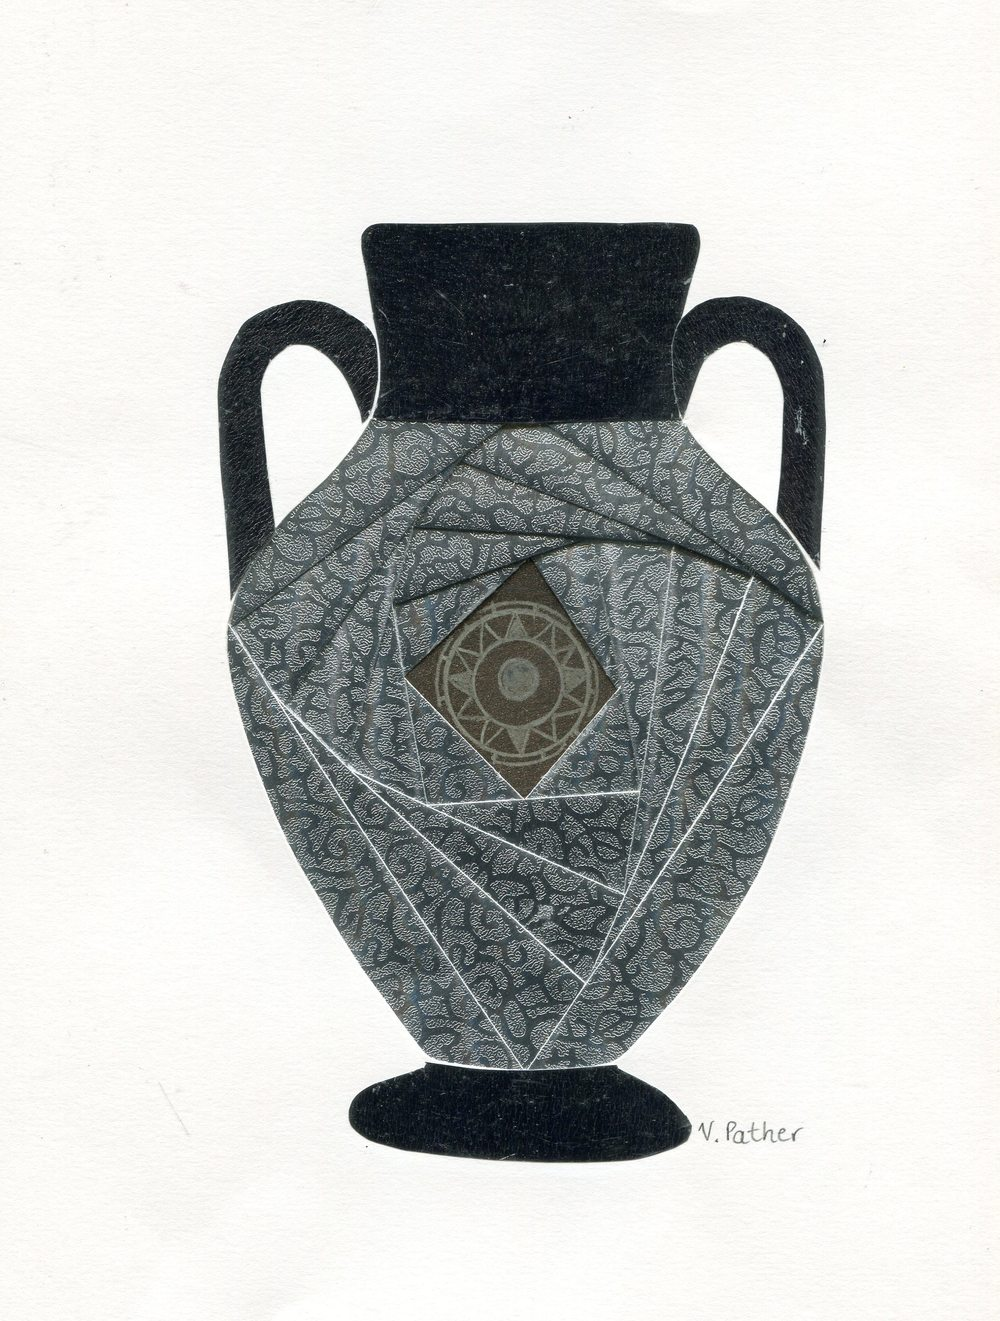 79 Pather, Vernie - Silver Urn, Mixed media..jpg